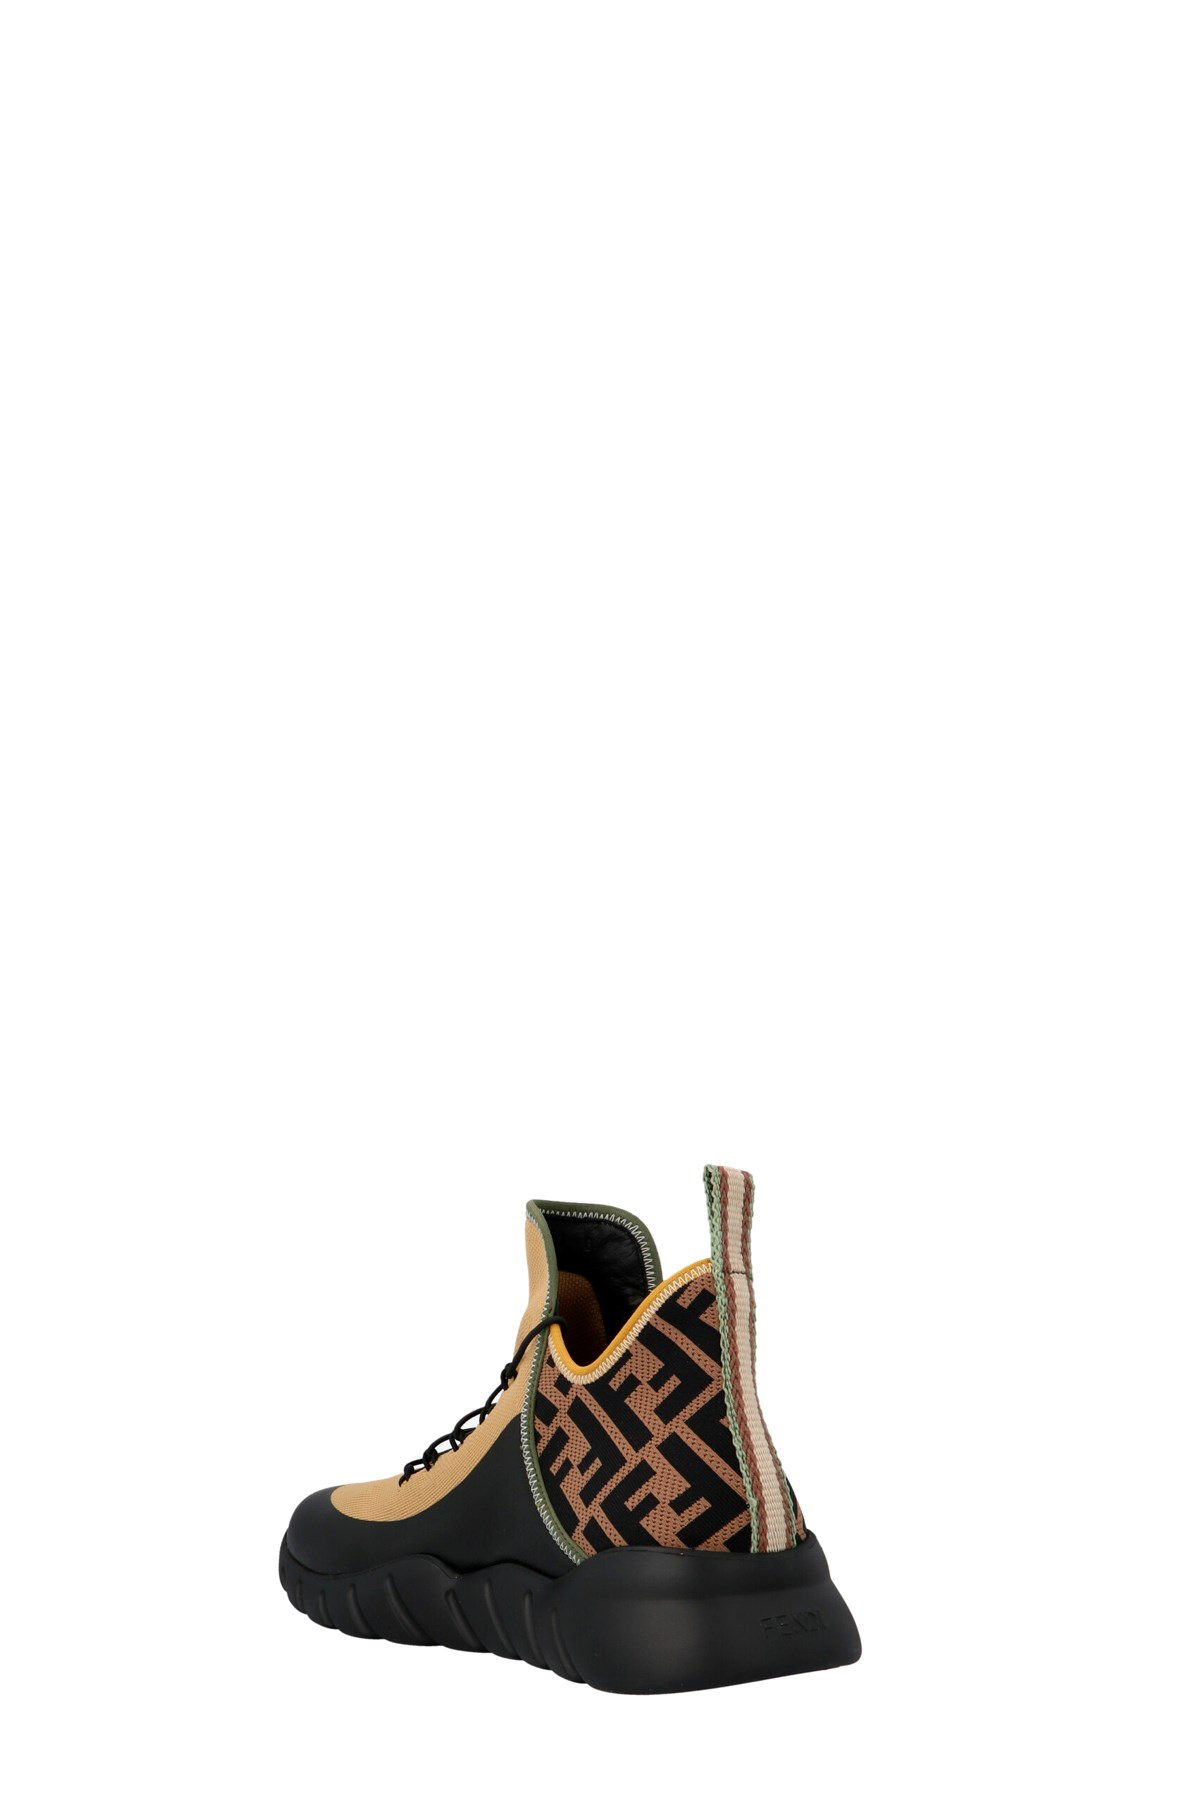 fendi Running sneakers available on www